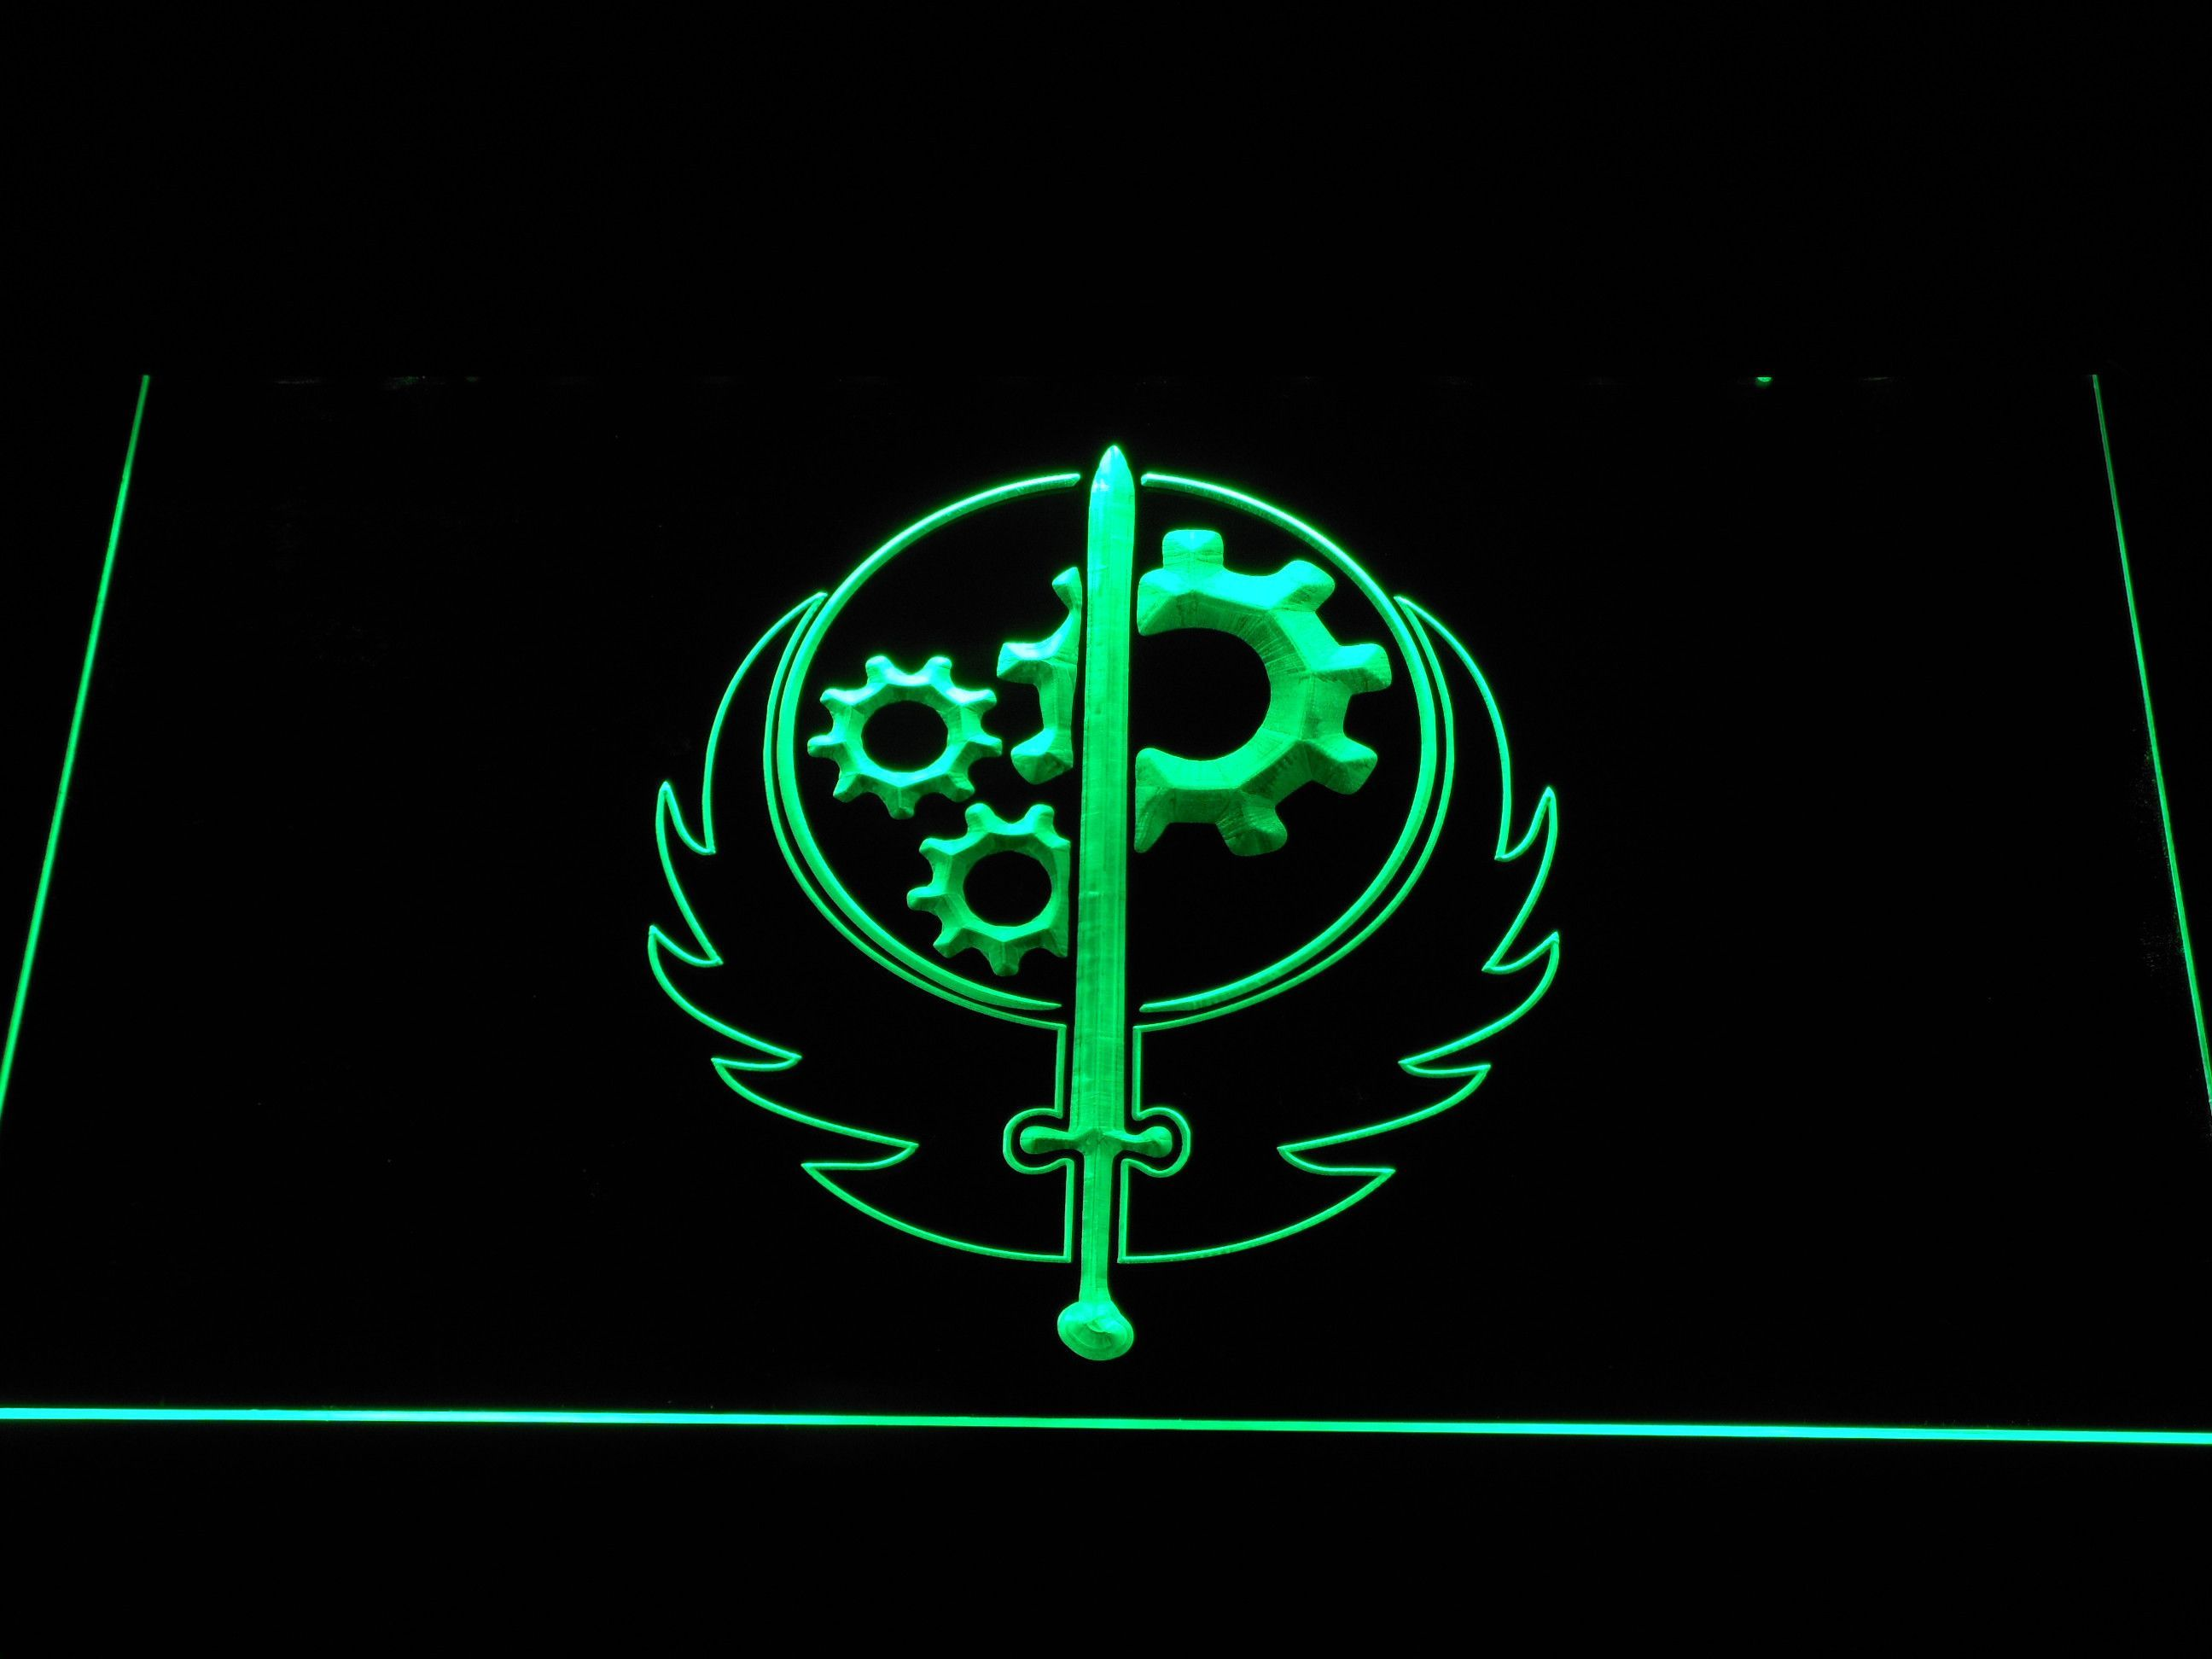 Fallout Brotherhood Of Steel Led Neon Sign Neon Signs Led Neon Signs Fallout Brotherhood Of Steel